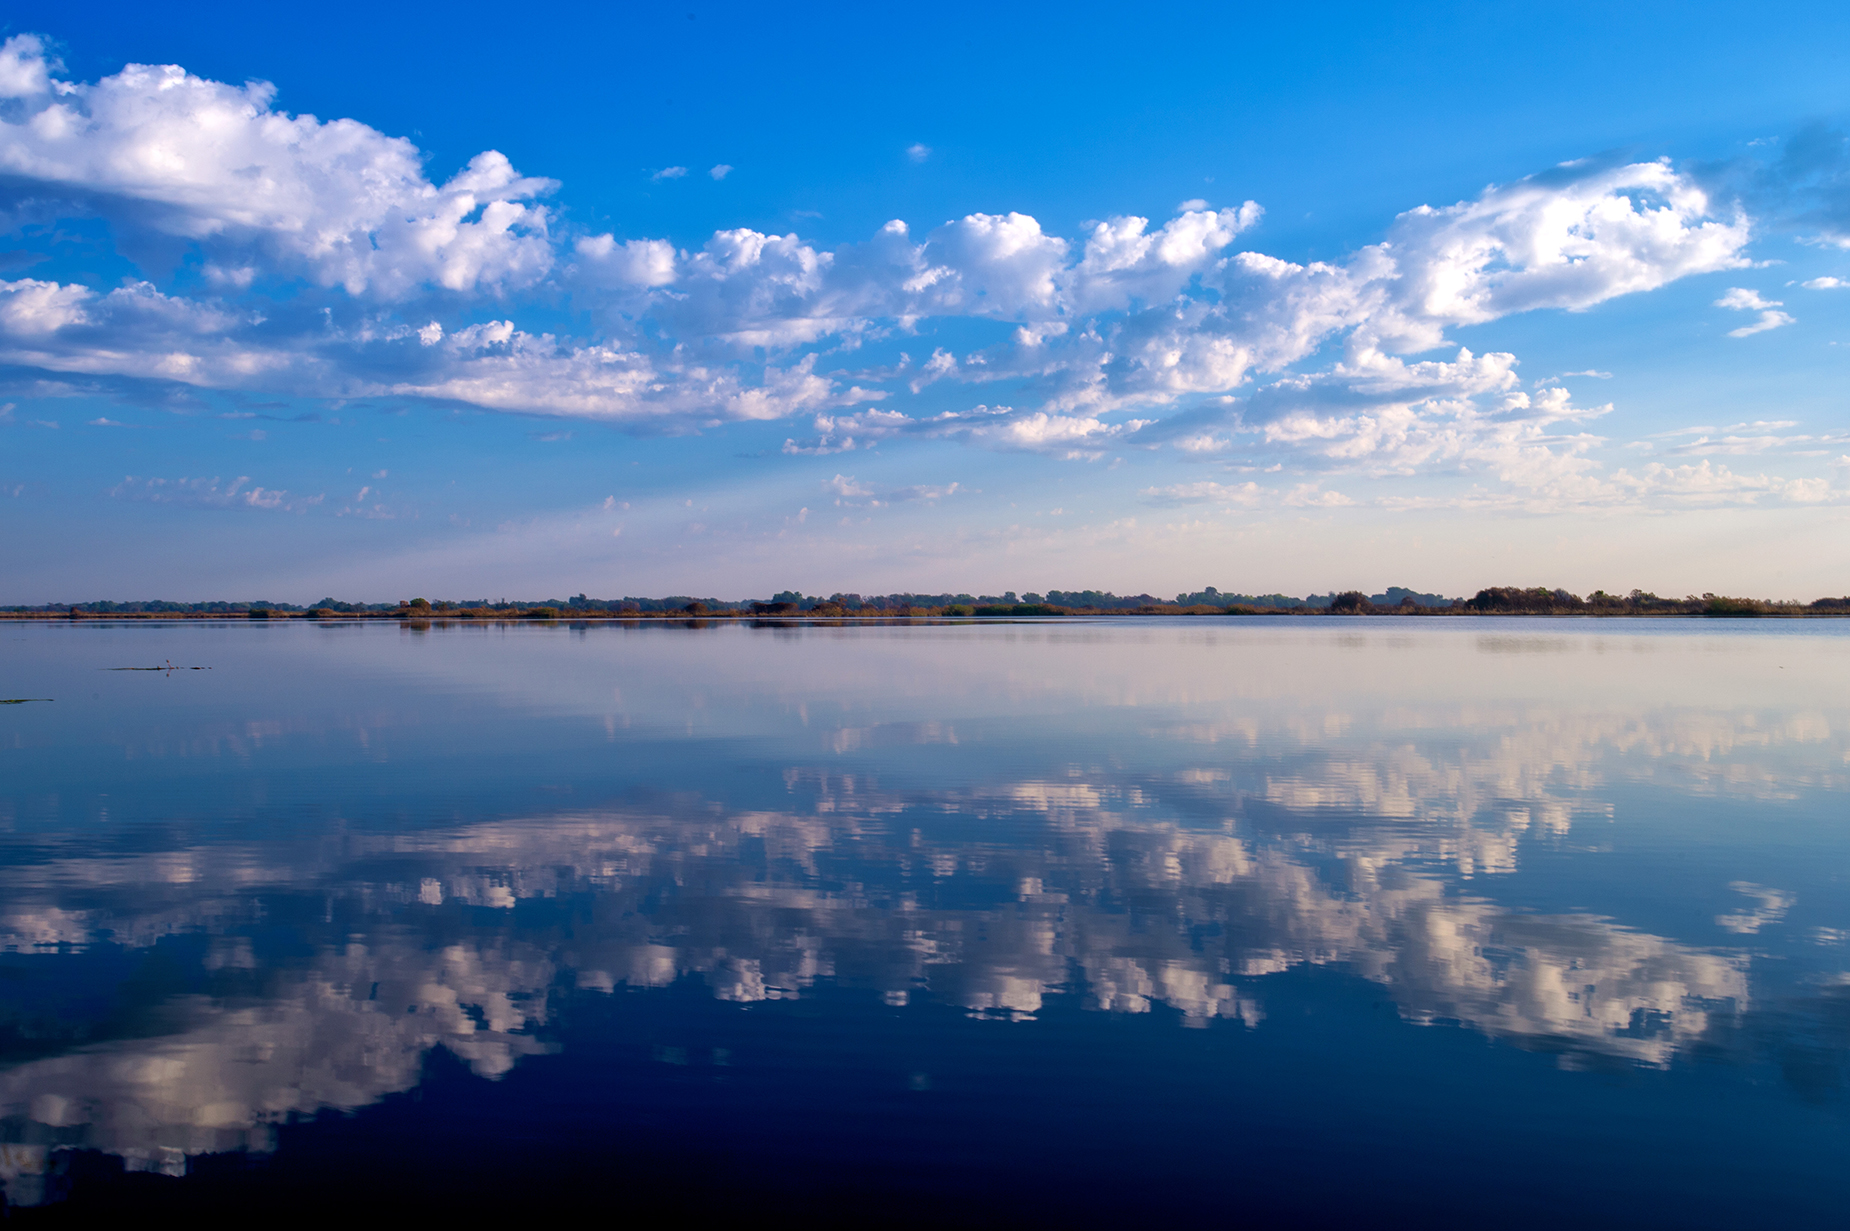 Okavango_Delta_Reflection_1